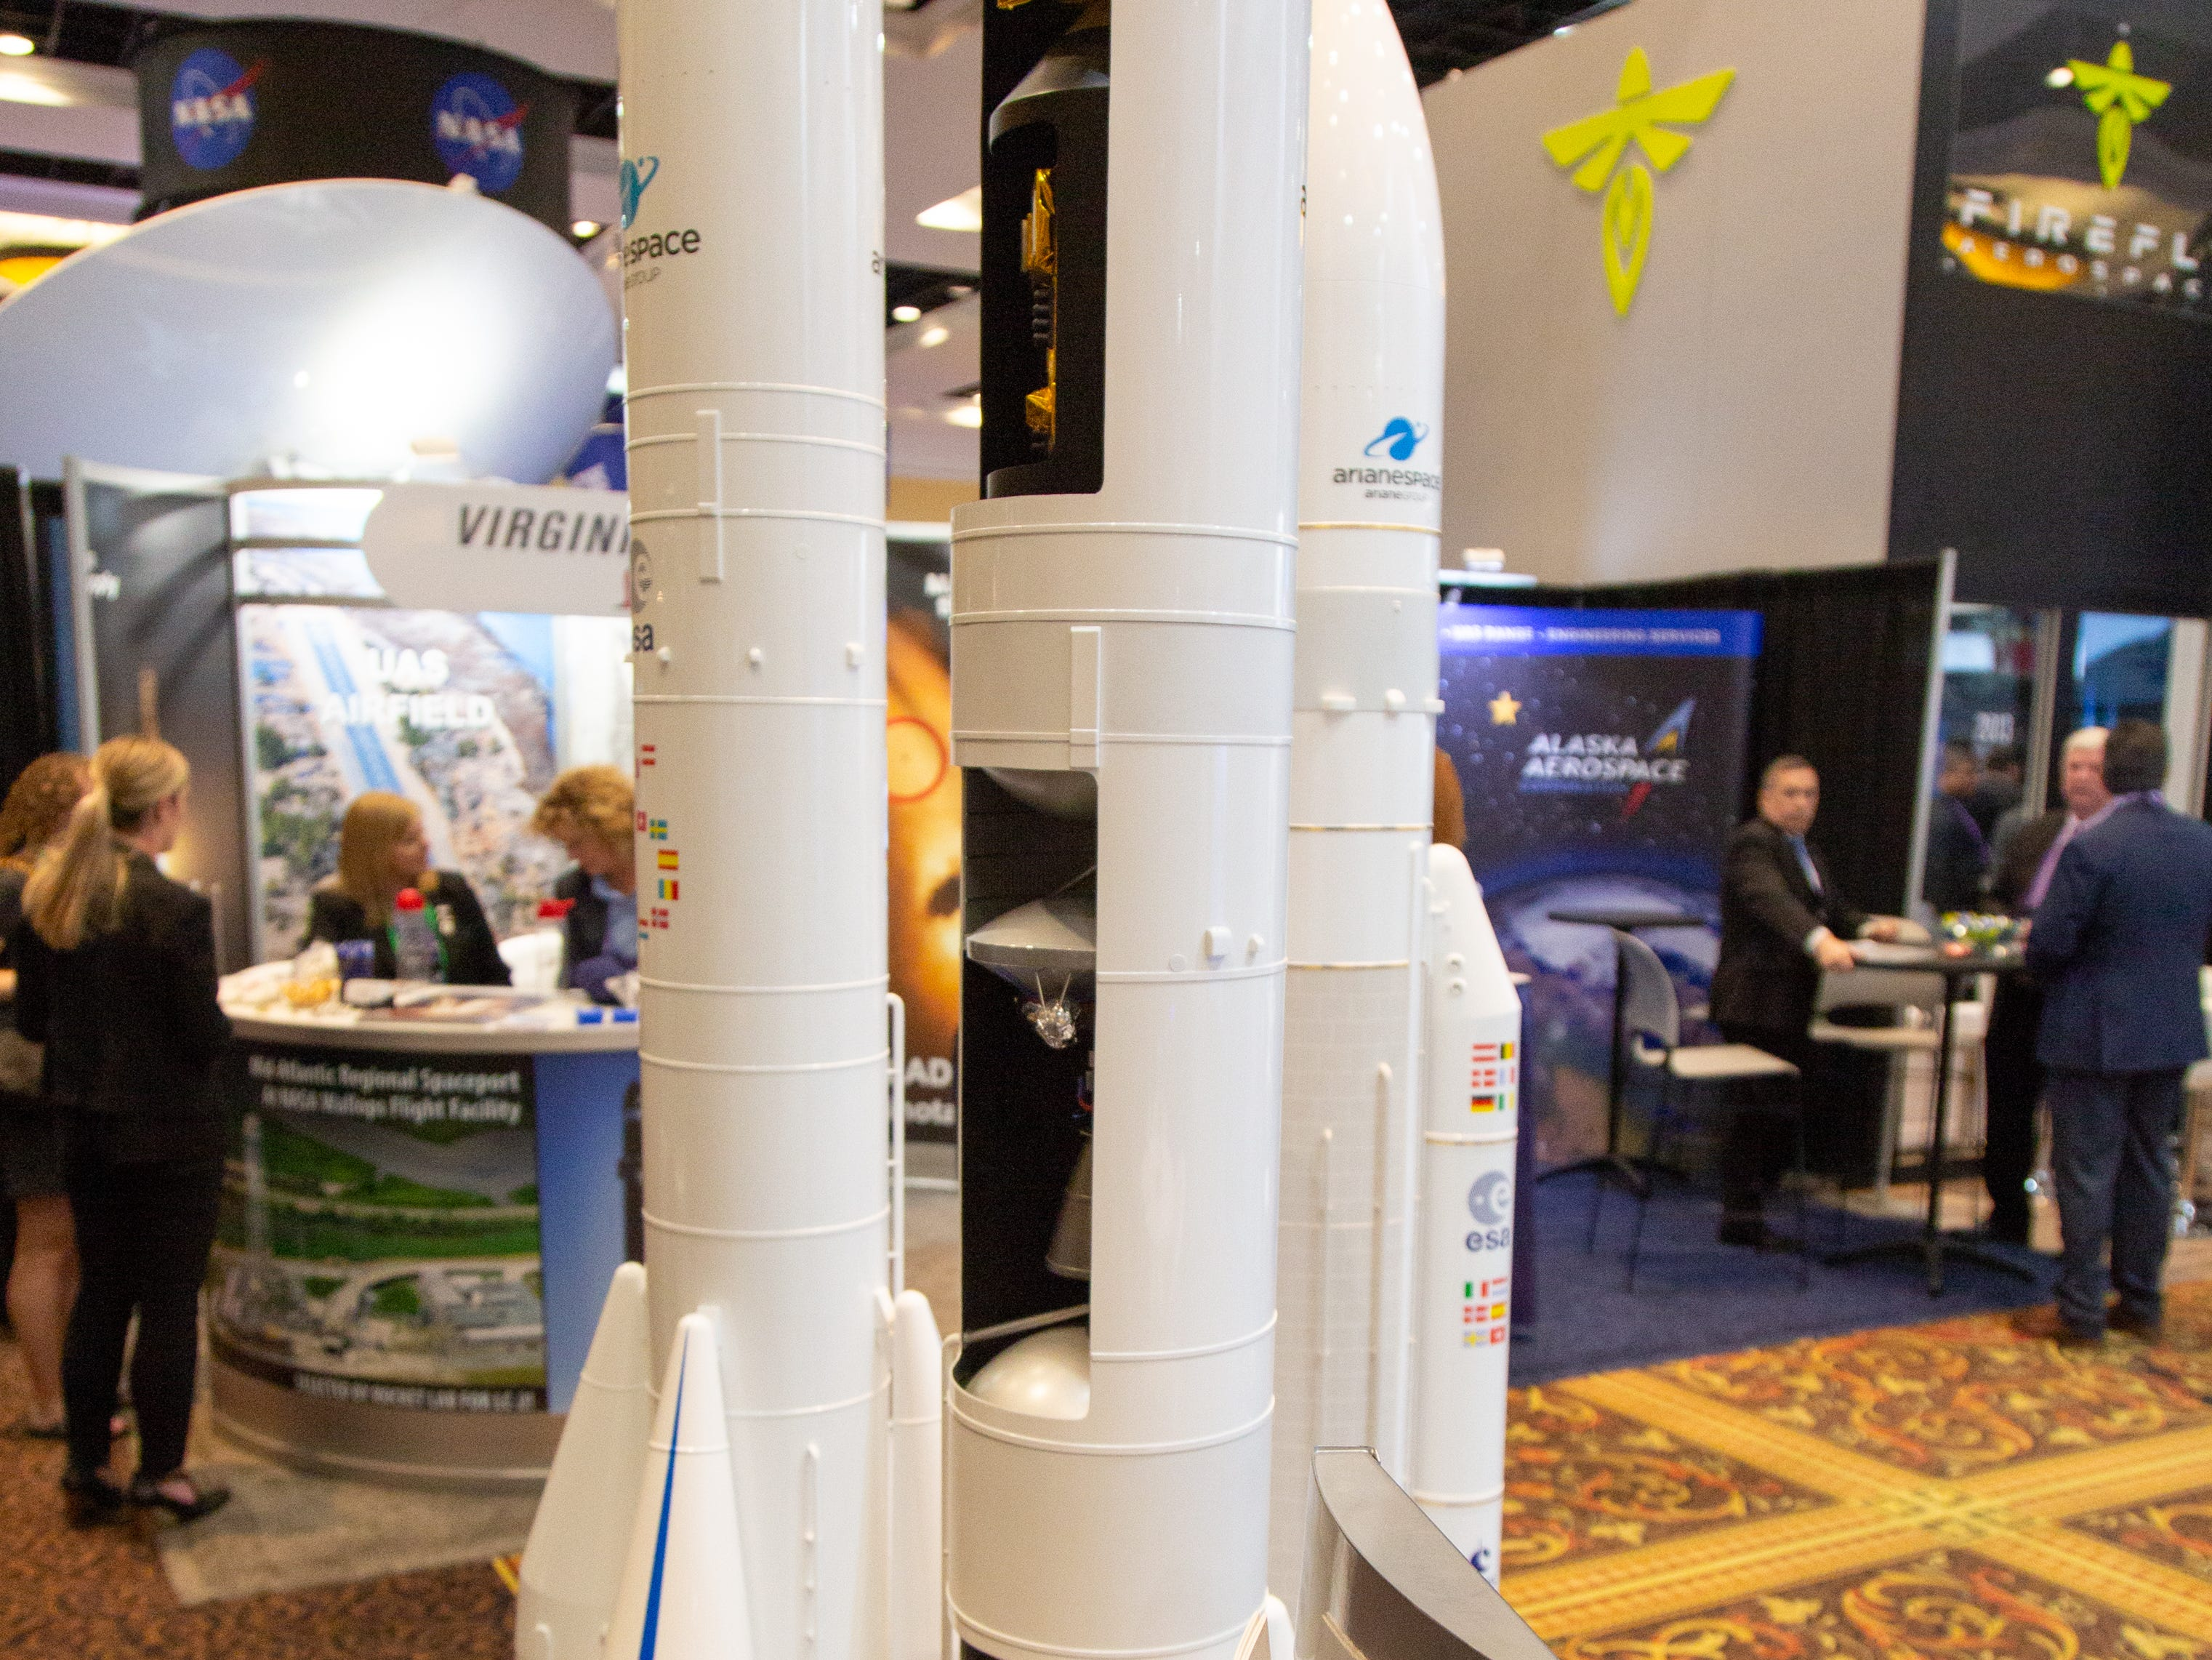 Models of the European Space Agency's Ariane rockets at the 35th Space Symposium in Colorado Springs.